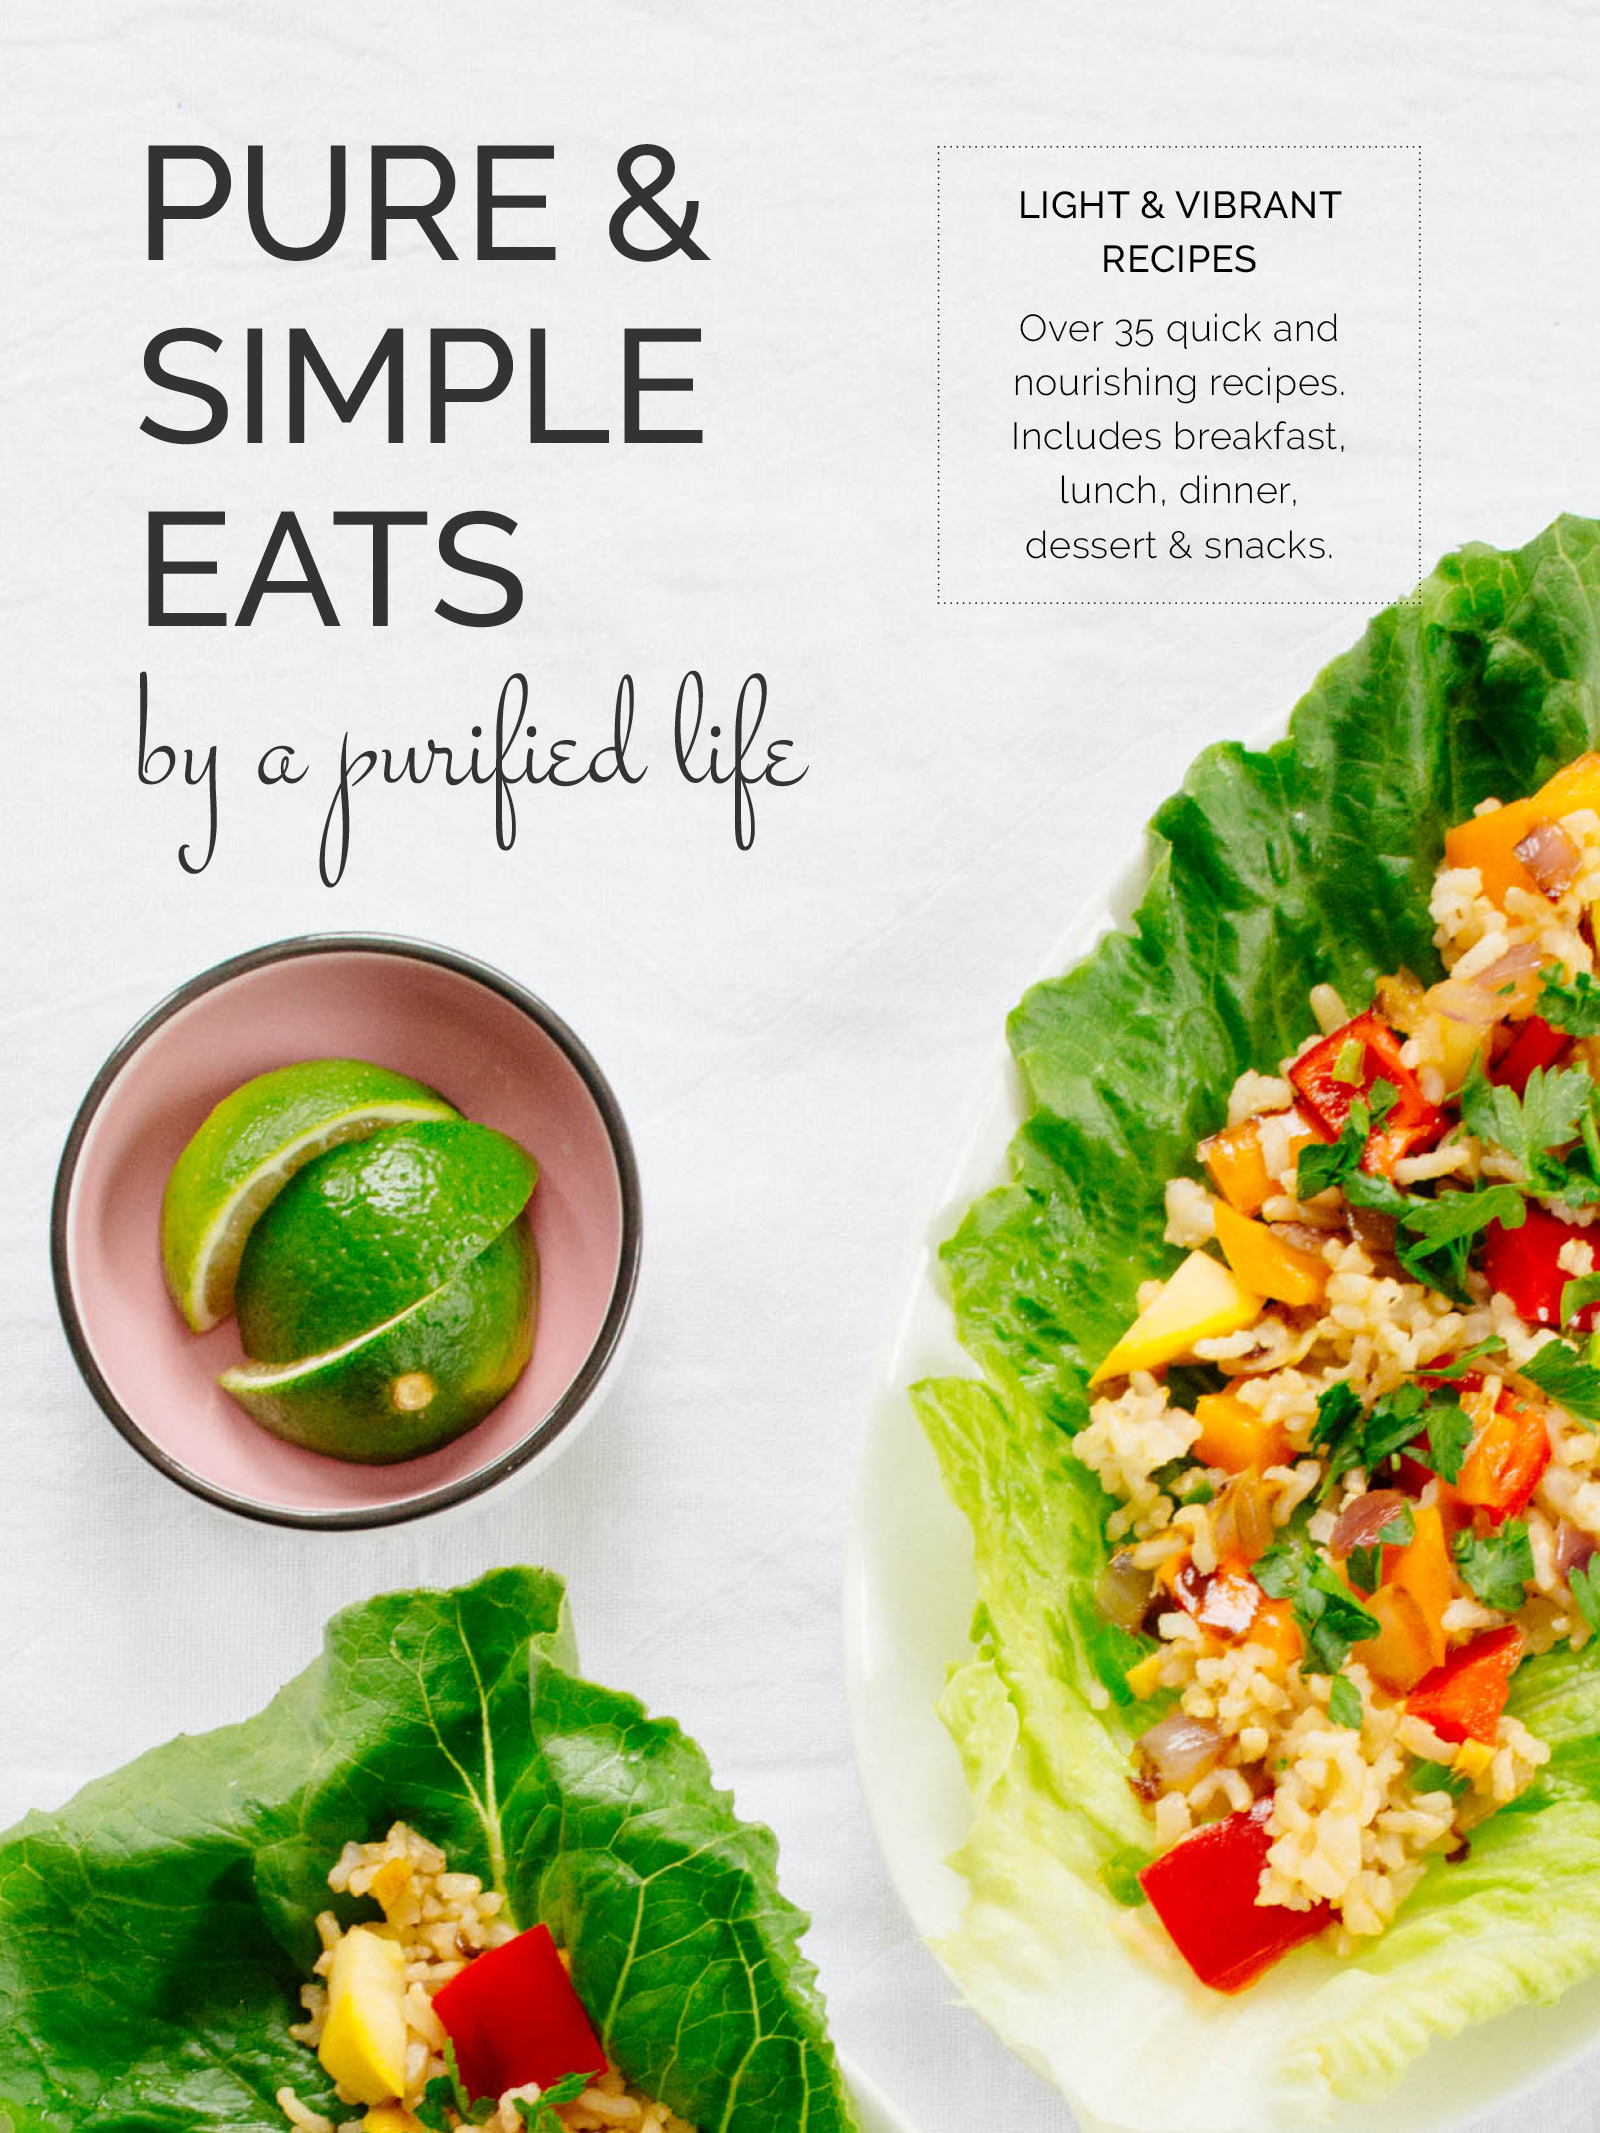 Pure & Simple Eats